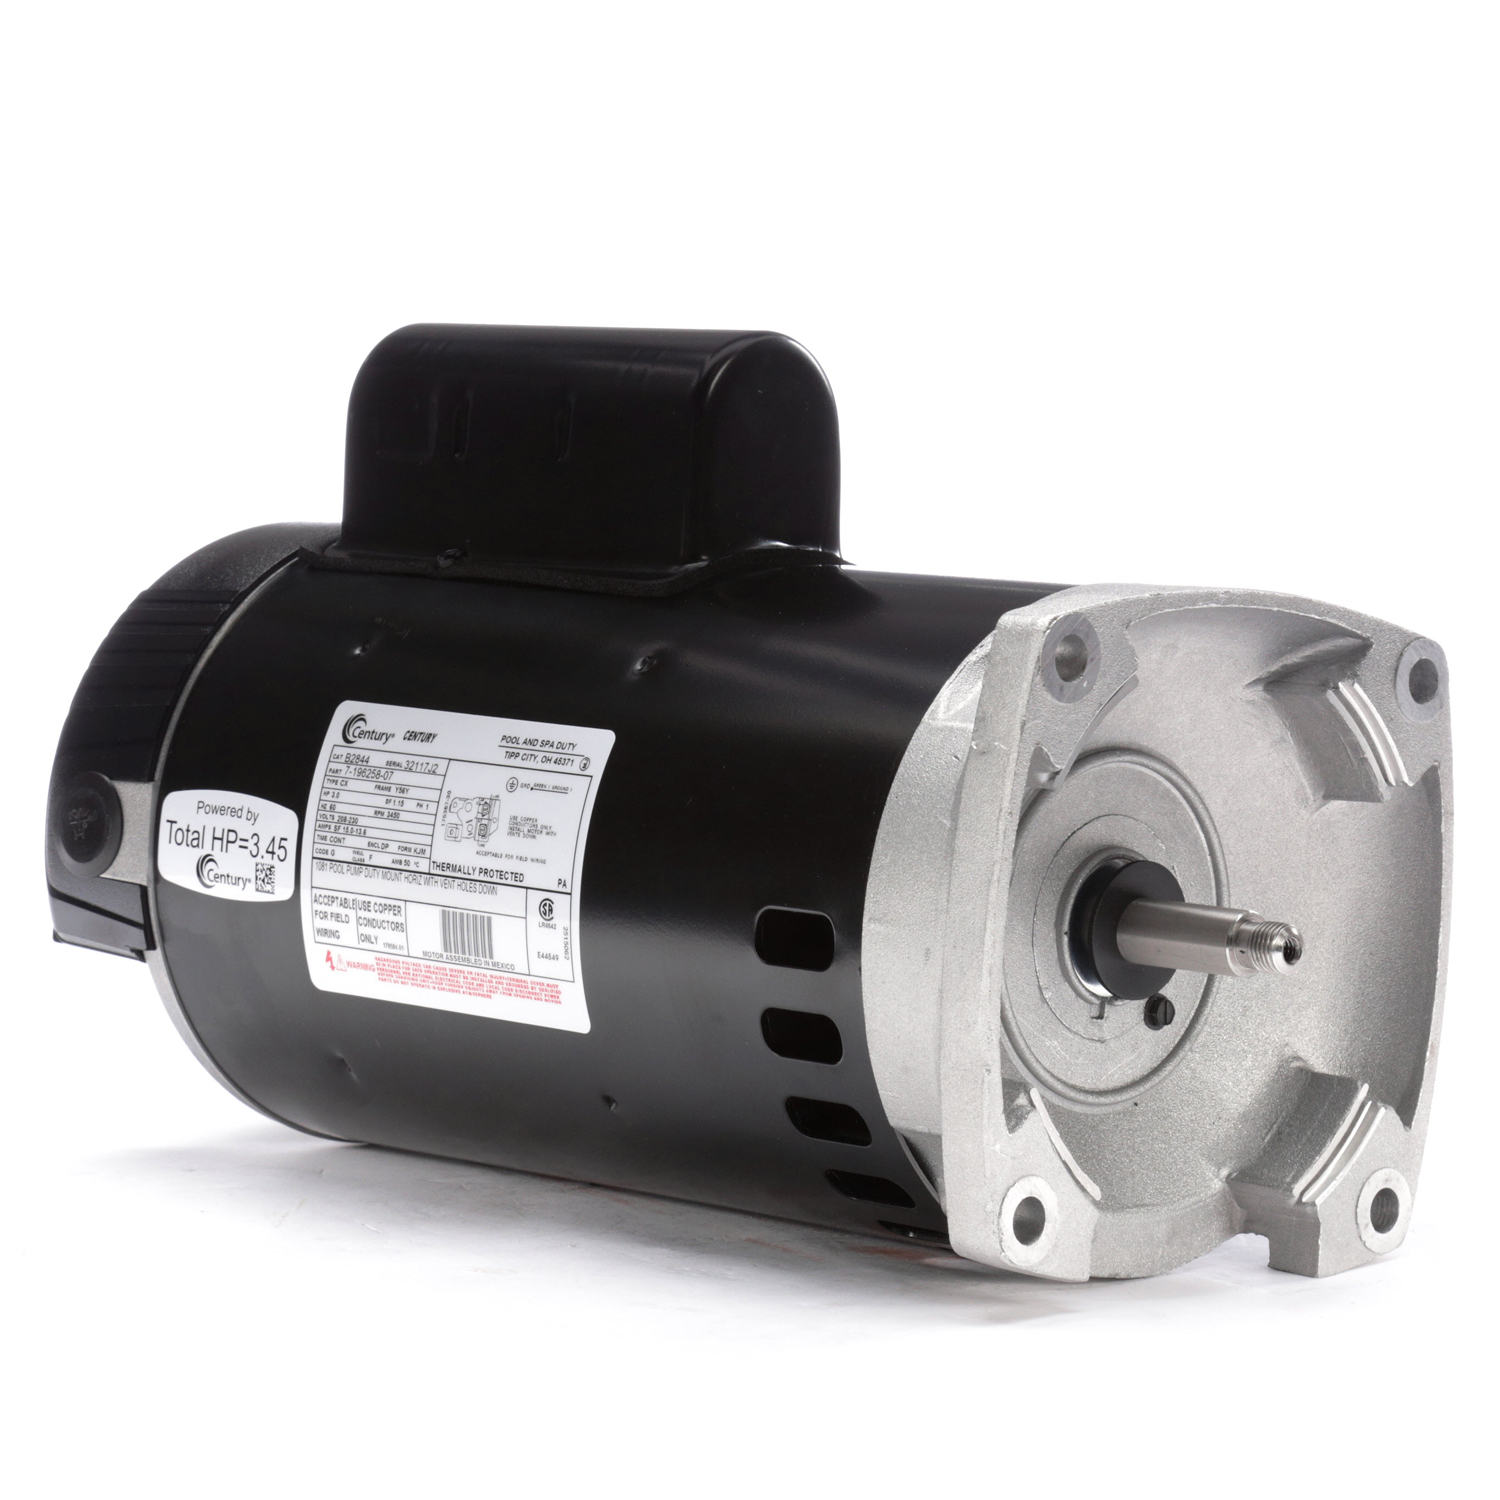 Centurion Pool And Spa Pump Motor Square Flange 208-230 ... on jacuzzi centrifugal pumps, jacuzzi tubs, jacuzzi blower motors, jacuzzi motors replacements, cal spa pumps and motors, jacuzzi enclosures, jacuzzi heaters, jacuzzi spa motor assembly, jacuzzi with two pumps, jacuzzi vacuum, jacuzzi water pumps, jacuzzi parts, jacuzzi lights,